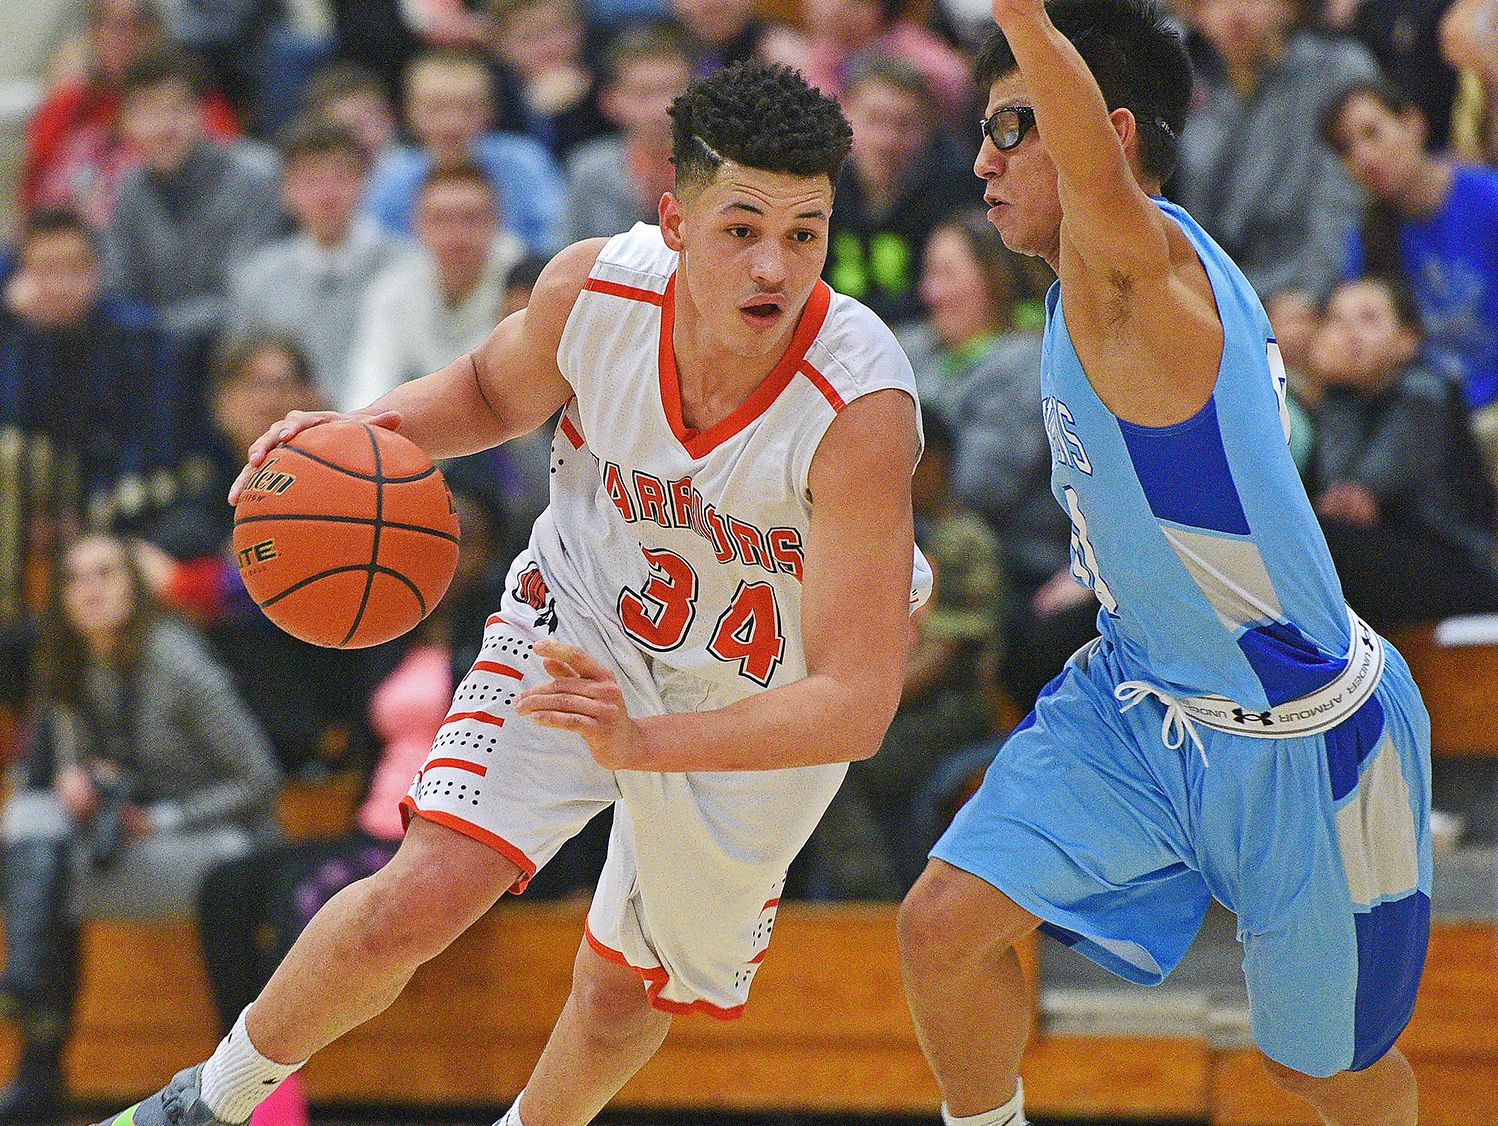 Washington's Angel Arroyo (34) drives past Rapid City Stevens' Andrew Cottier (0) during a game Friday, Feb. 10, 2017, at Washington High School in Sioux Falls.